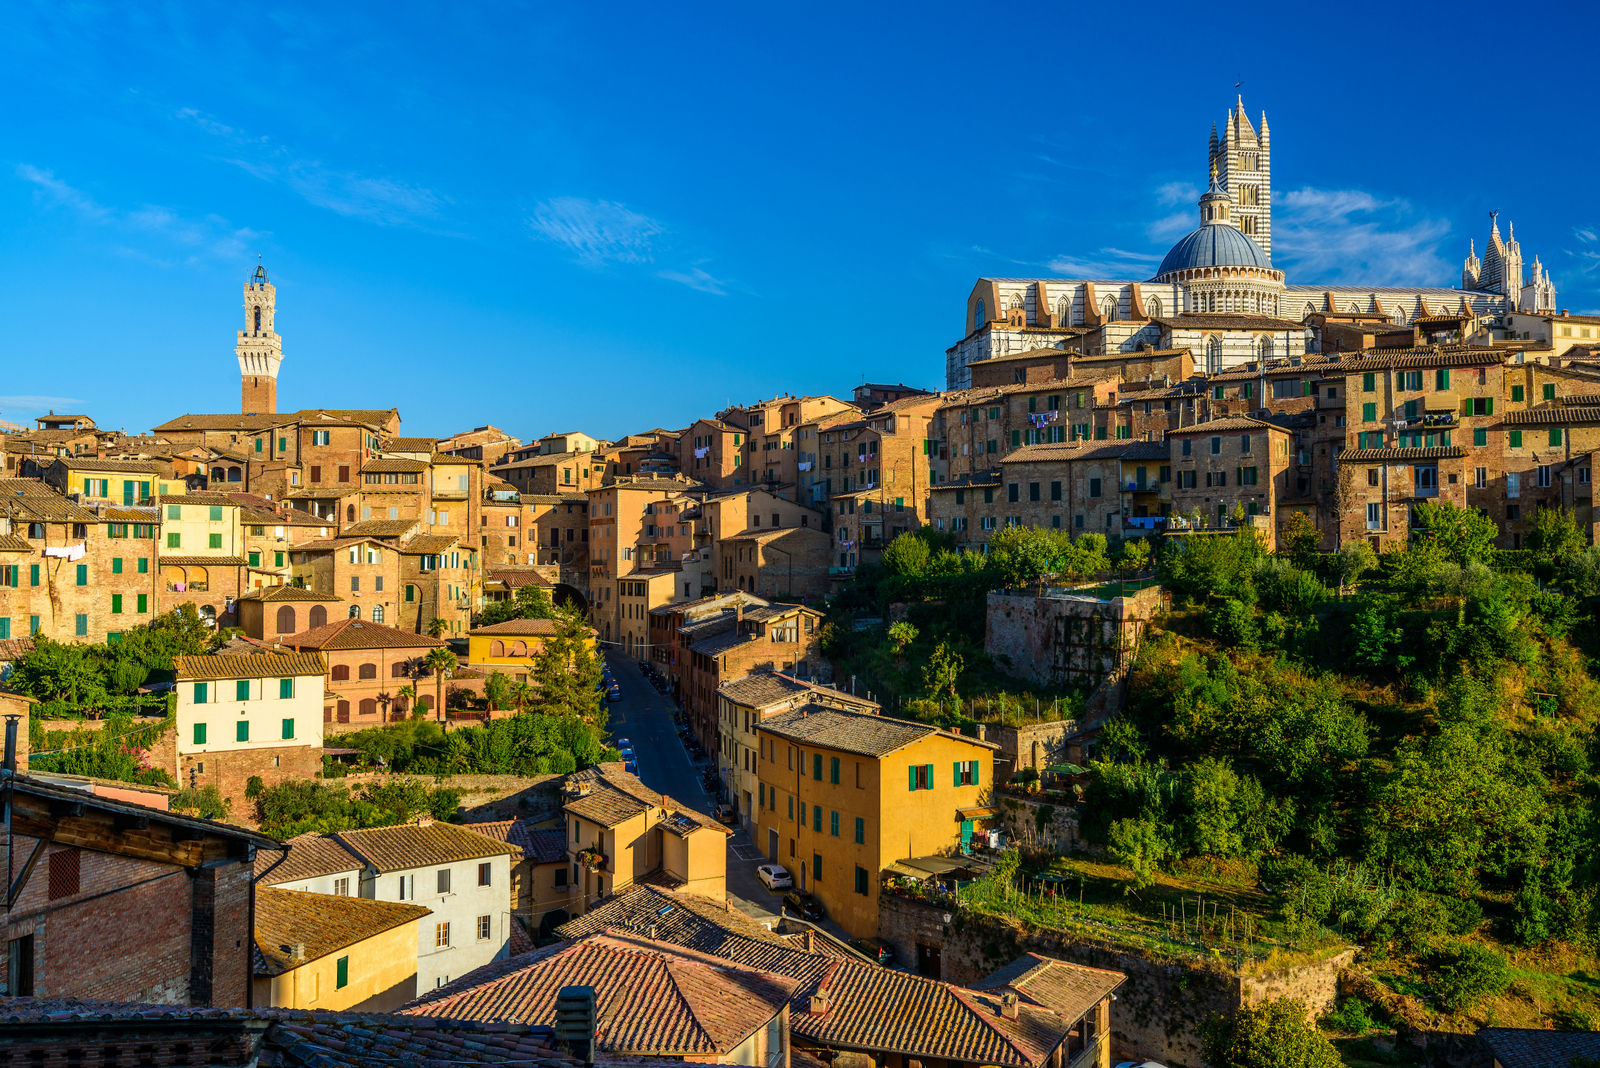 where to stay in siena a guide to accommodation options